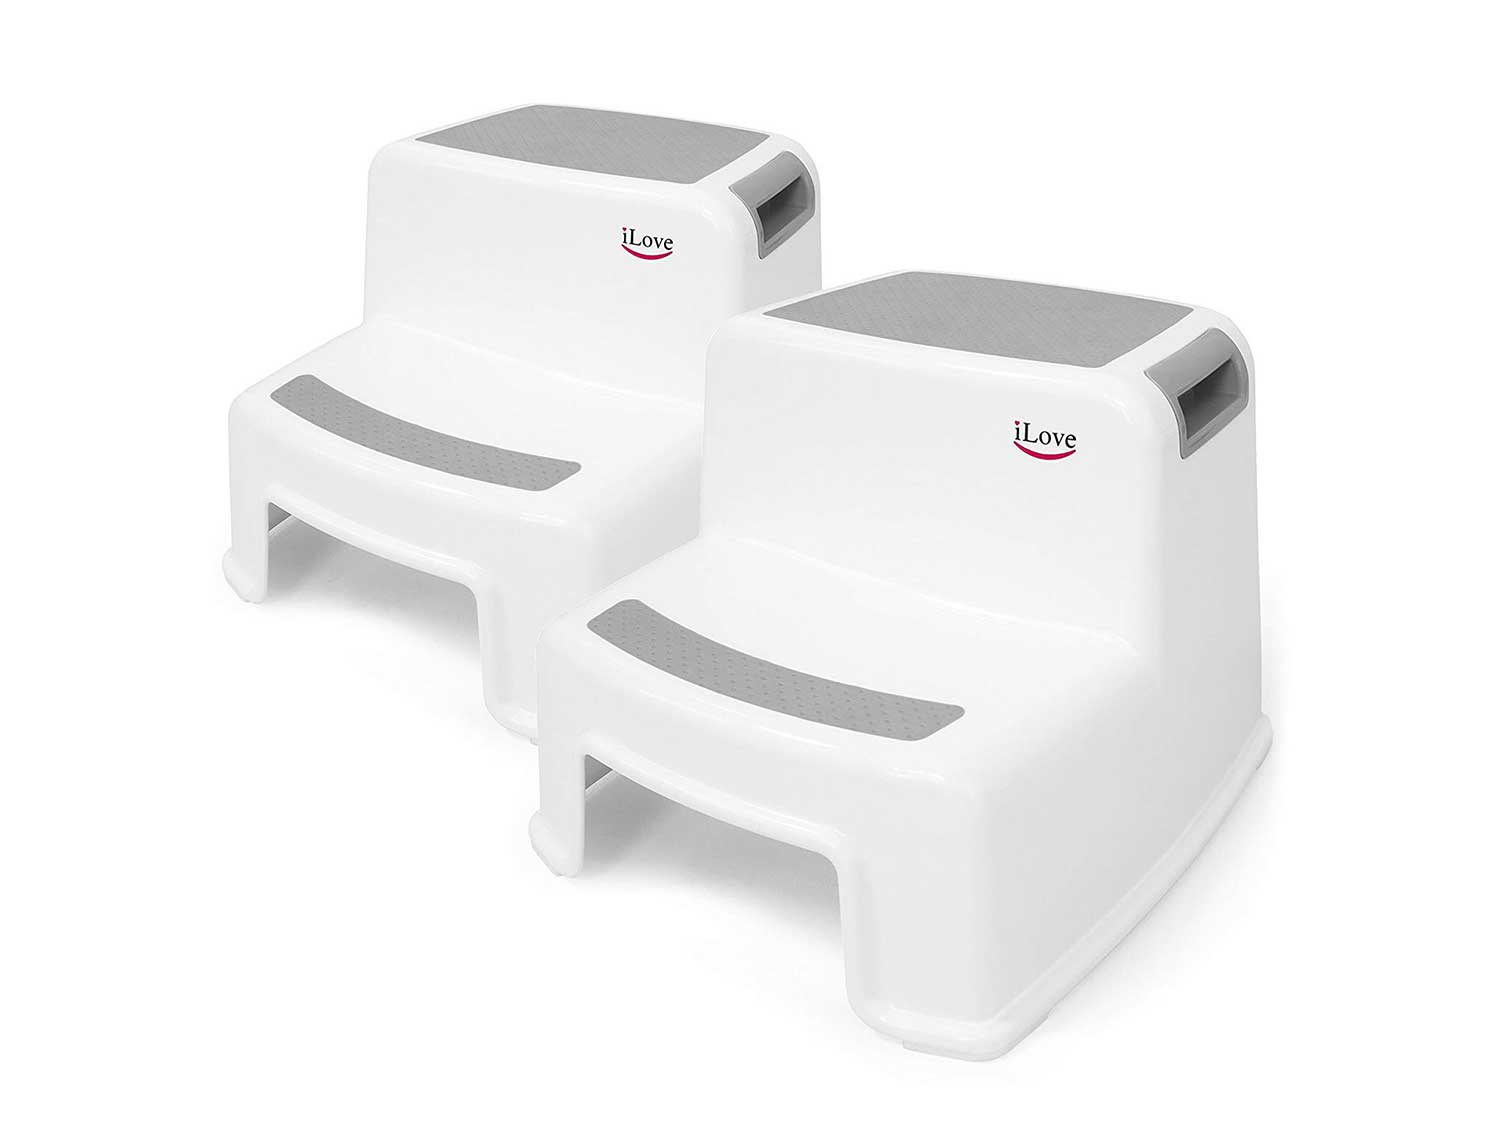 2 Step Stool for Kids (Gray 2 Pack)   Toddler Stool for Toilet Potty Training   Slip Resistant Soft Grip for Safety as Bathroom Potty Stool & Kitchen Step Stool   Dual Height & Wide Two Step